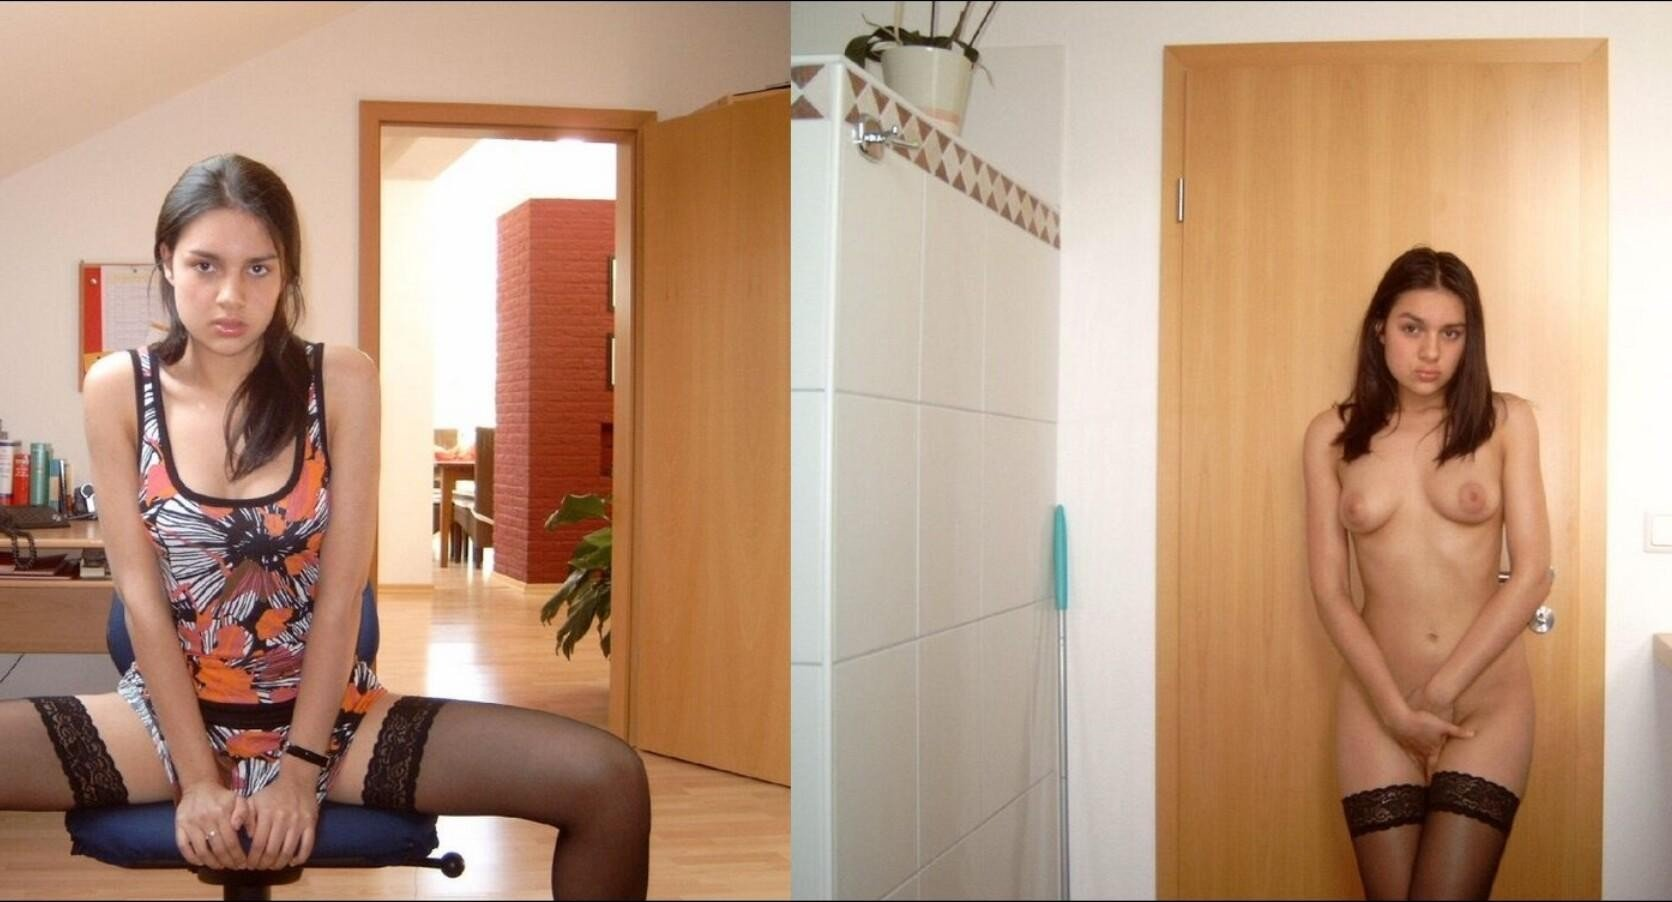 Near husbands